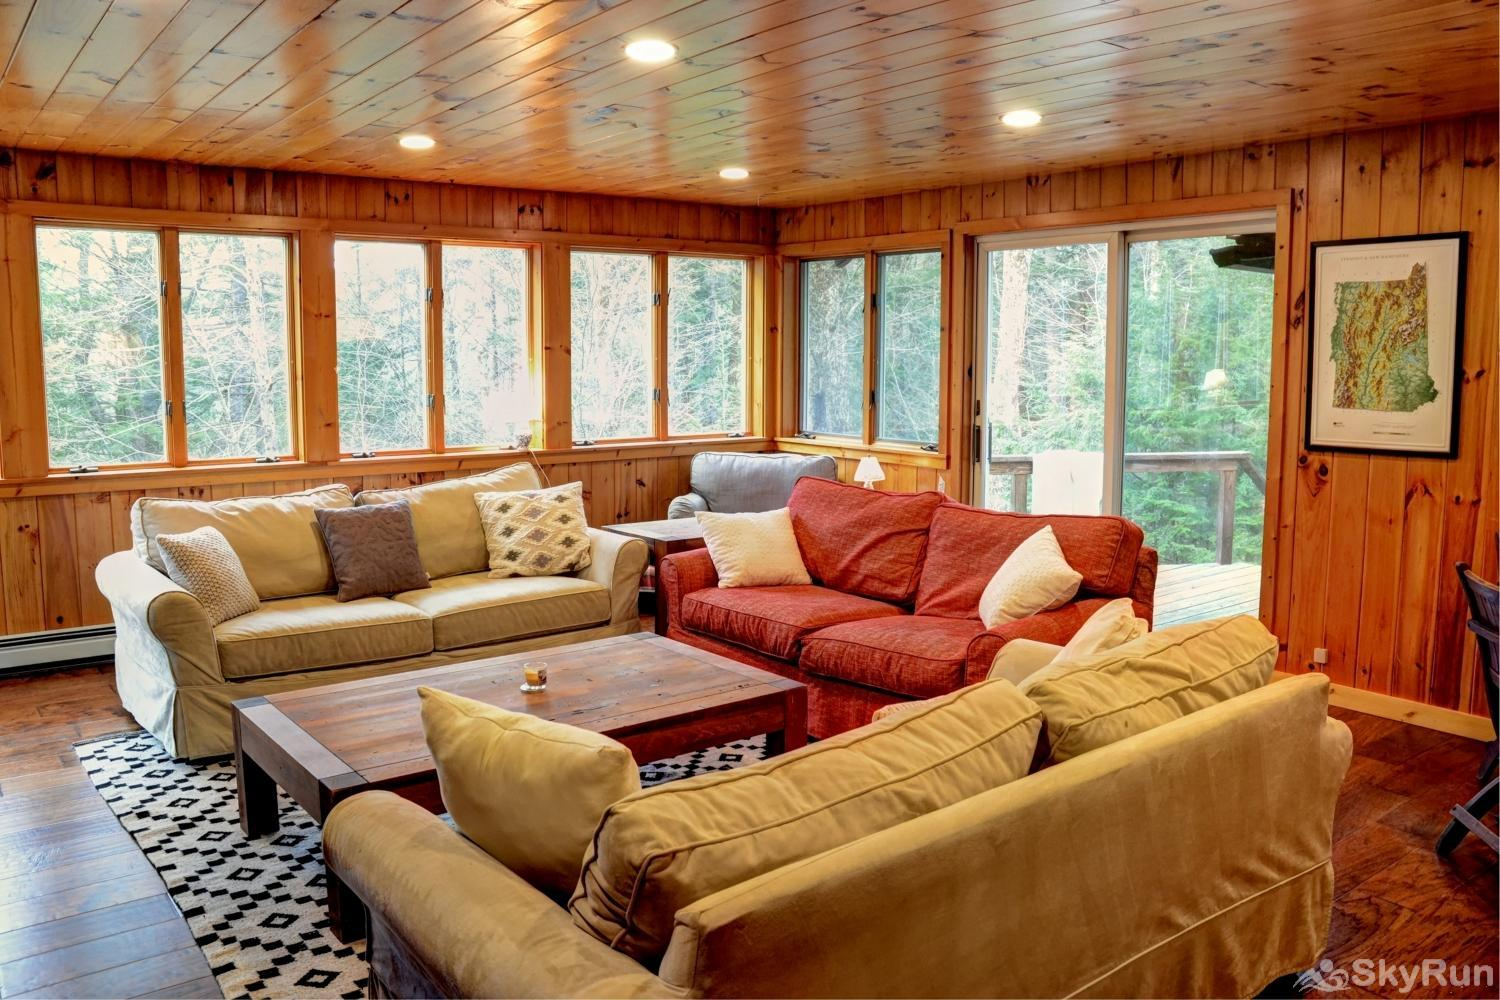 Norwegian Lane House Hardwood living room with fireplace